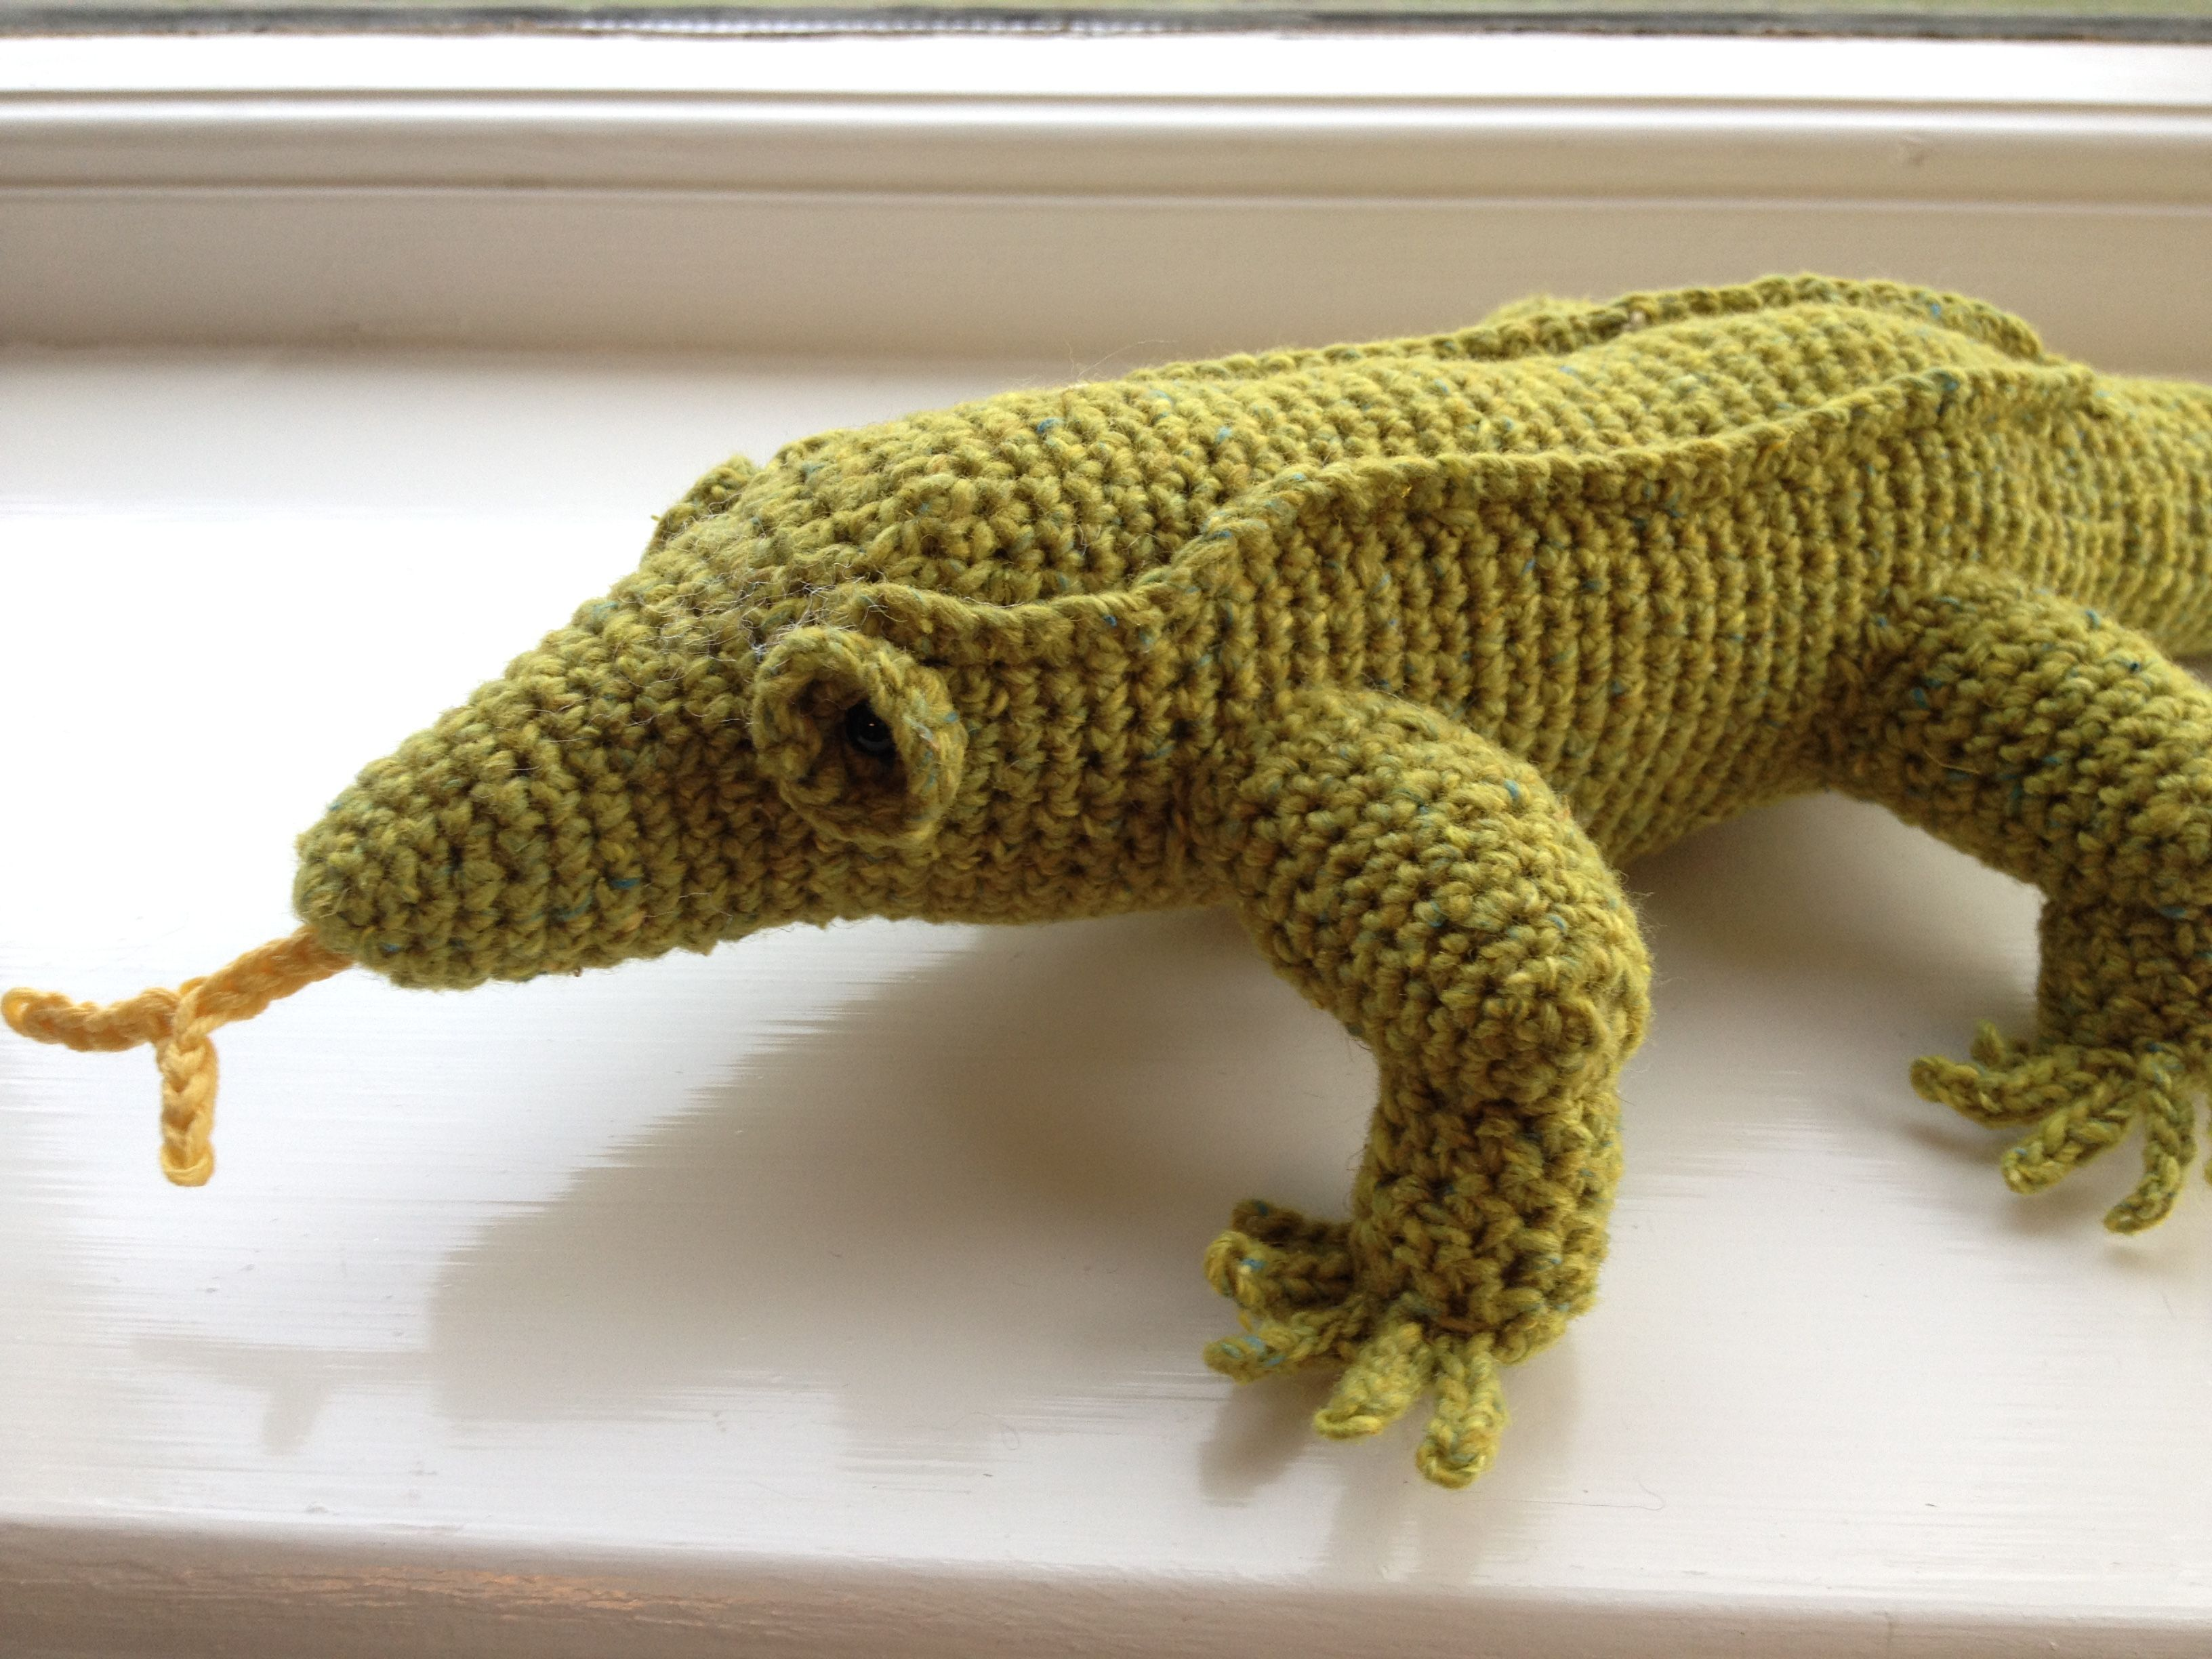 A great crested gecko and a cat | Geckos, Crested gecko and Crochet